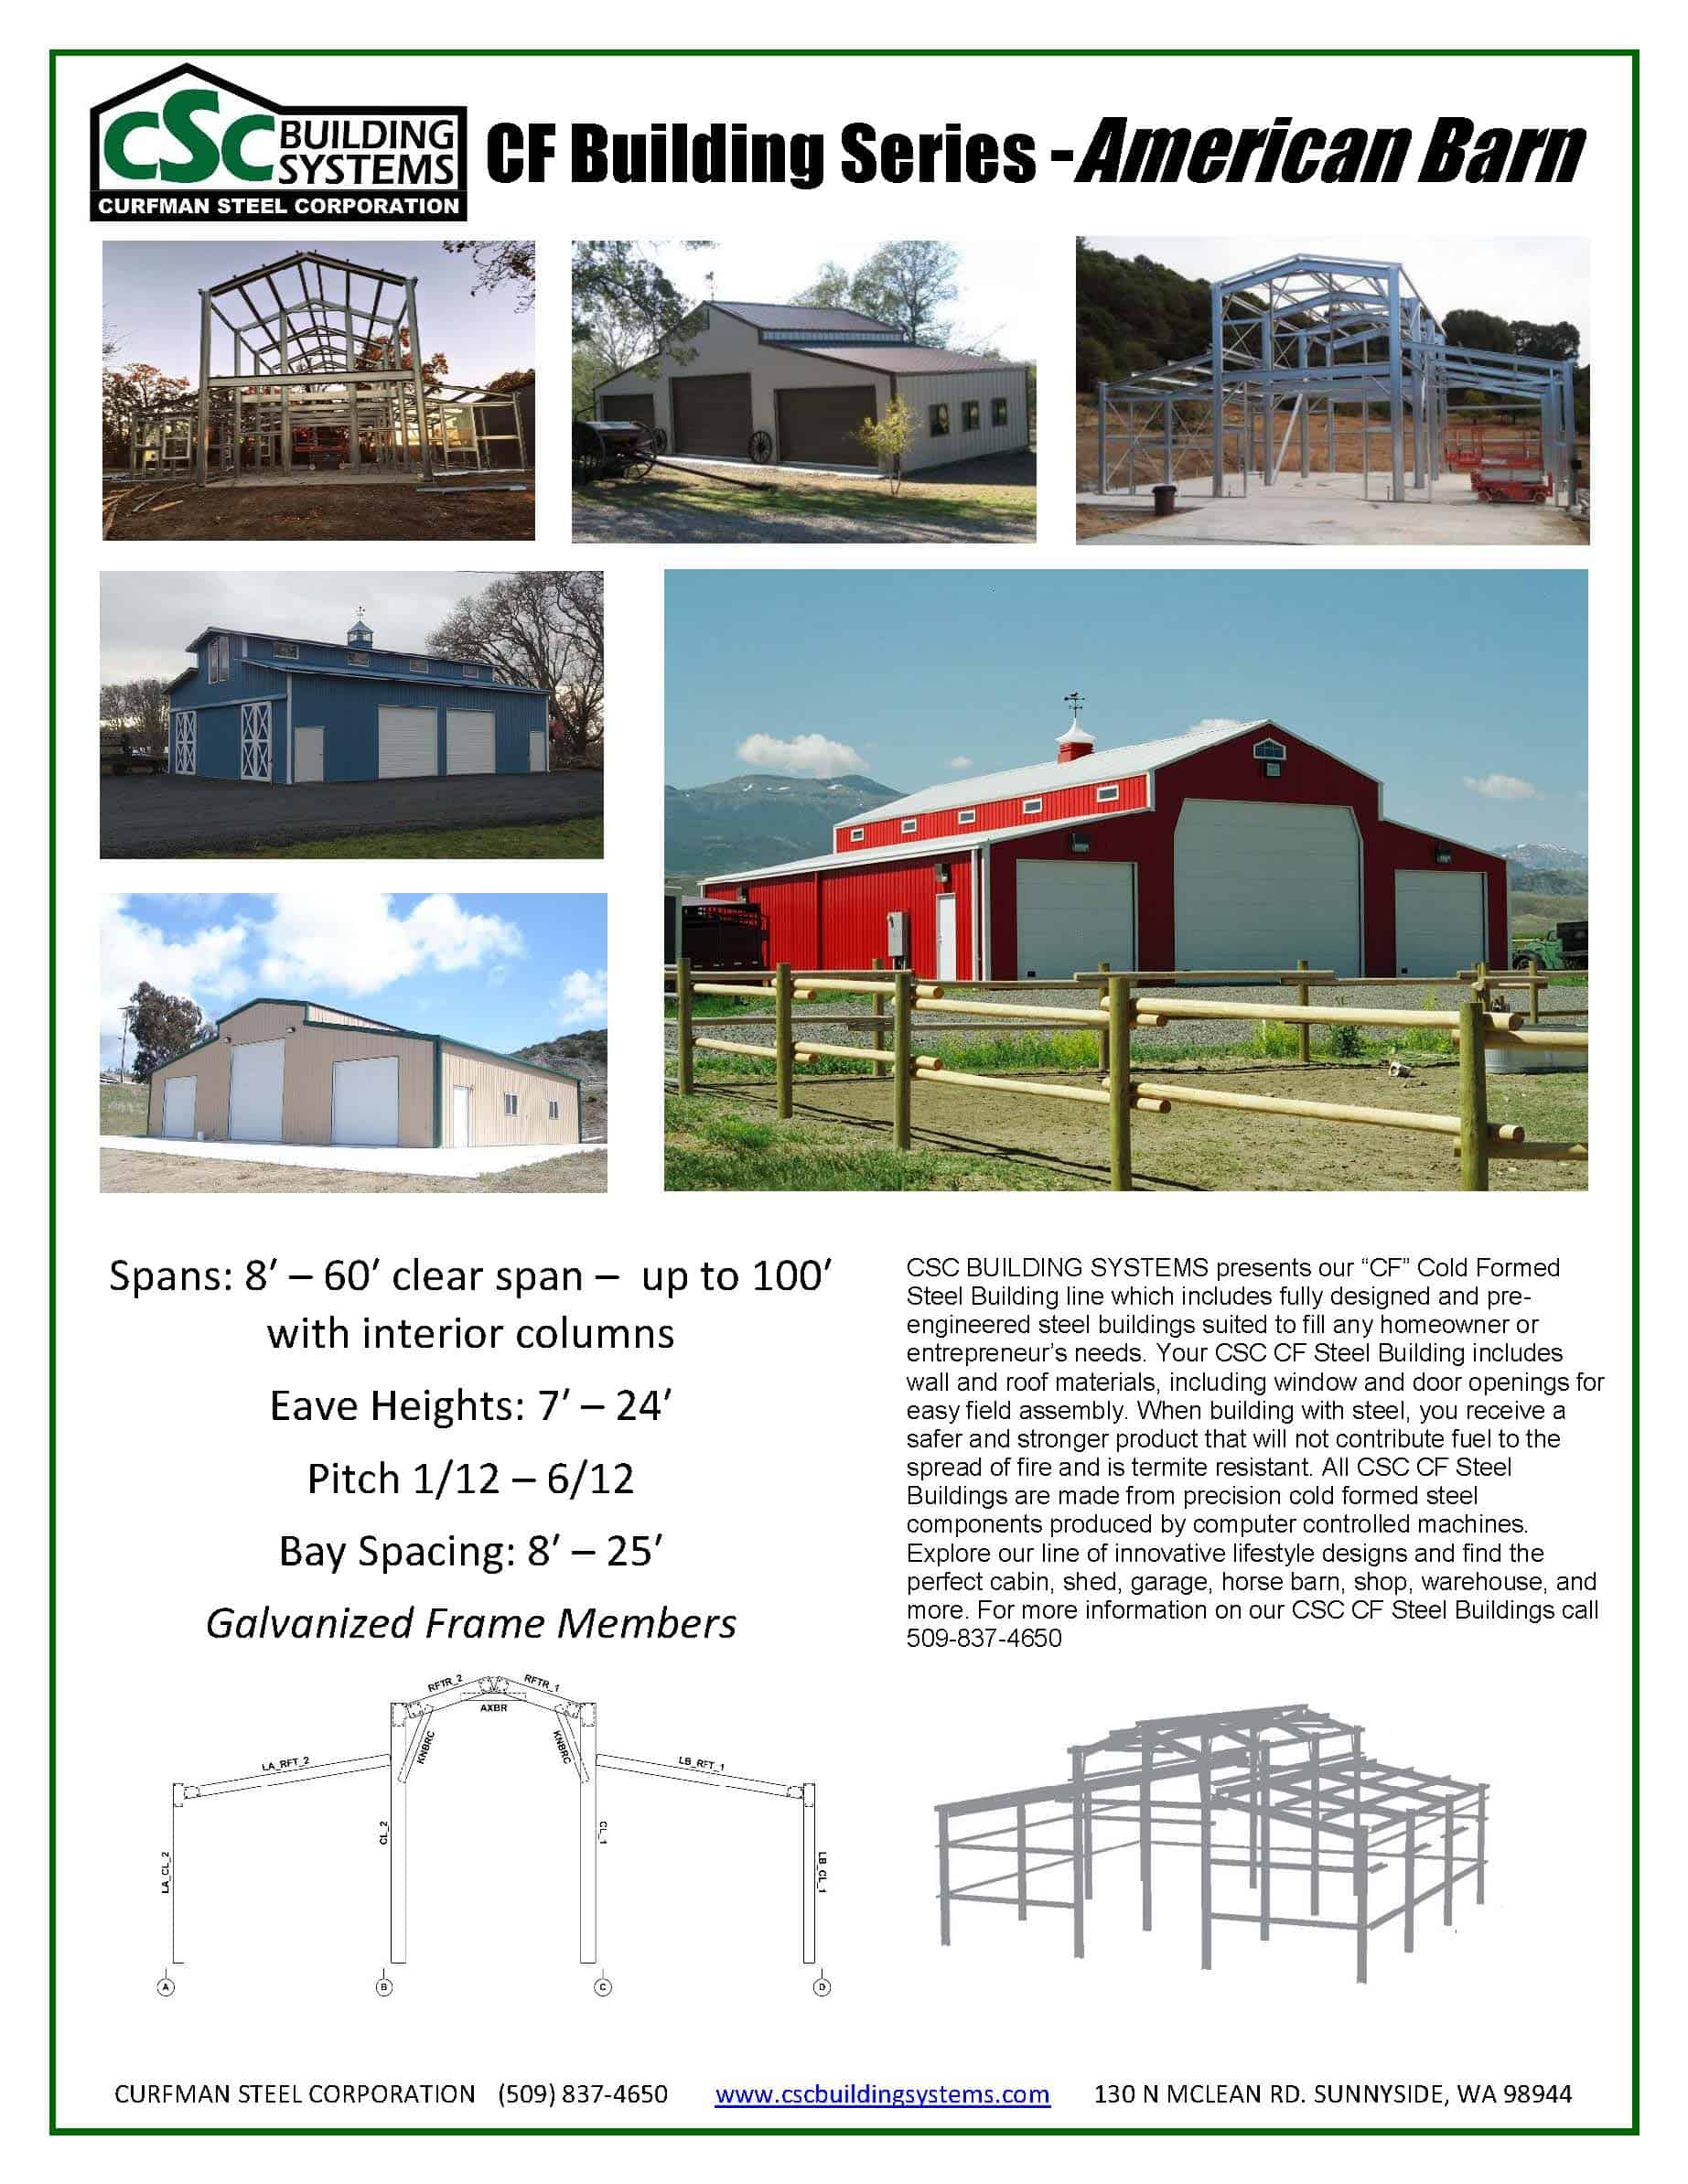 American barn American barn style kit homes